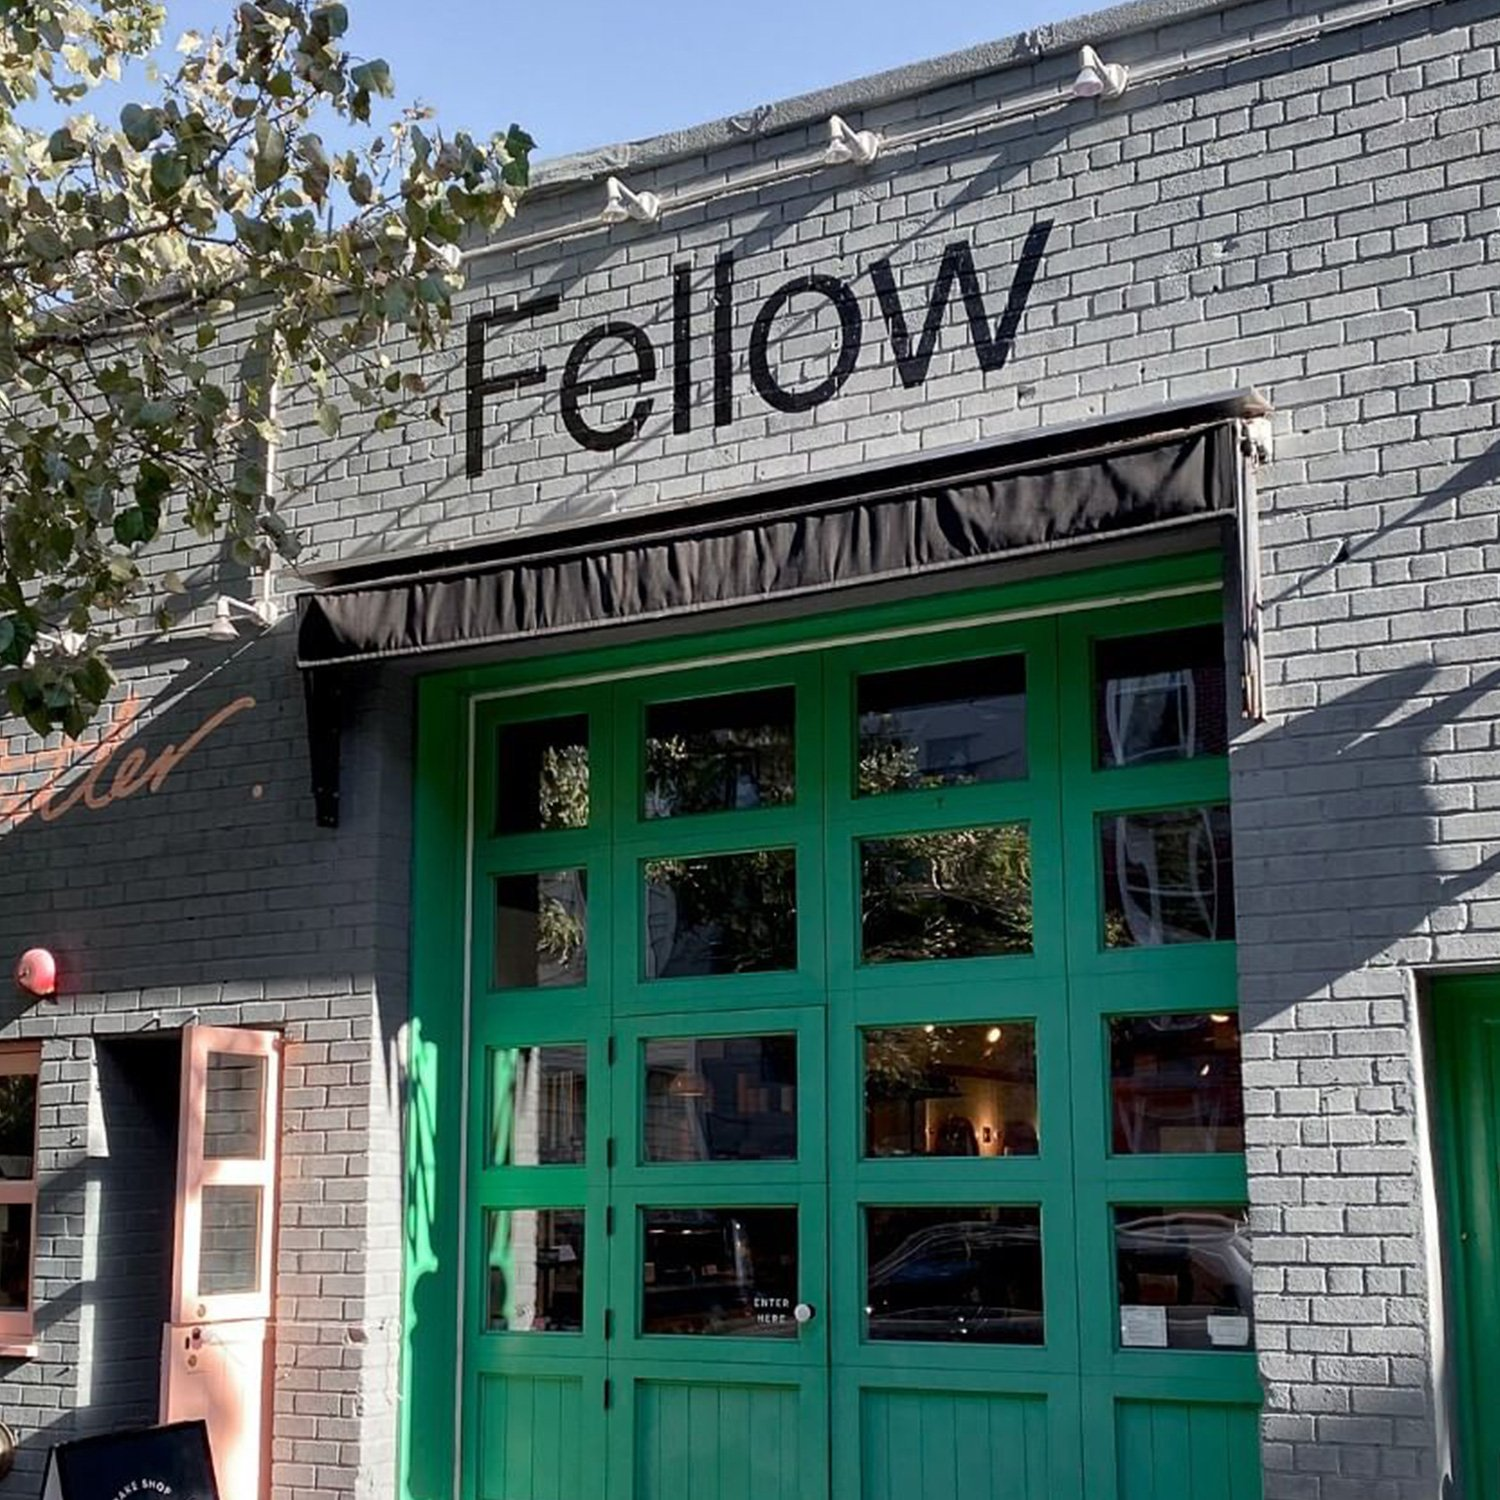 Fellow Storefront in Willamsburg, Brooklyn, branding by RoAndCo